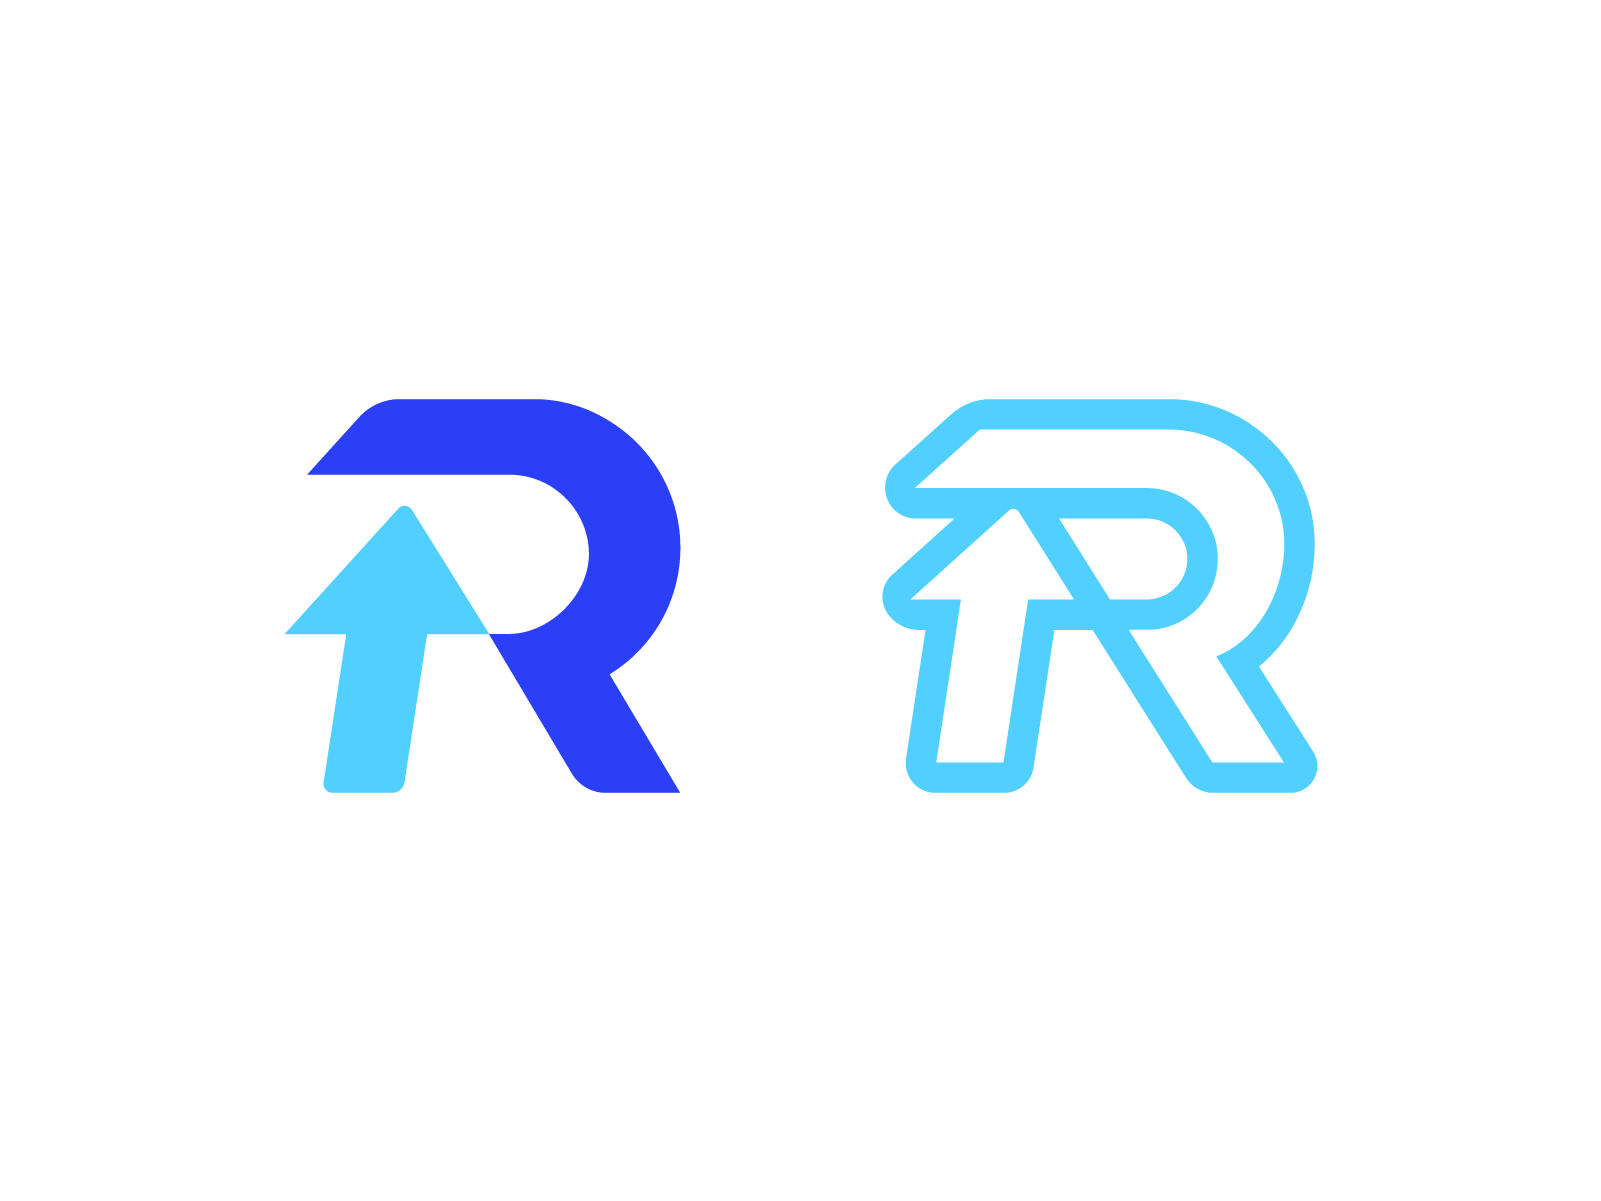 Reachmo.re dribbble 01